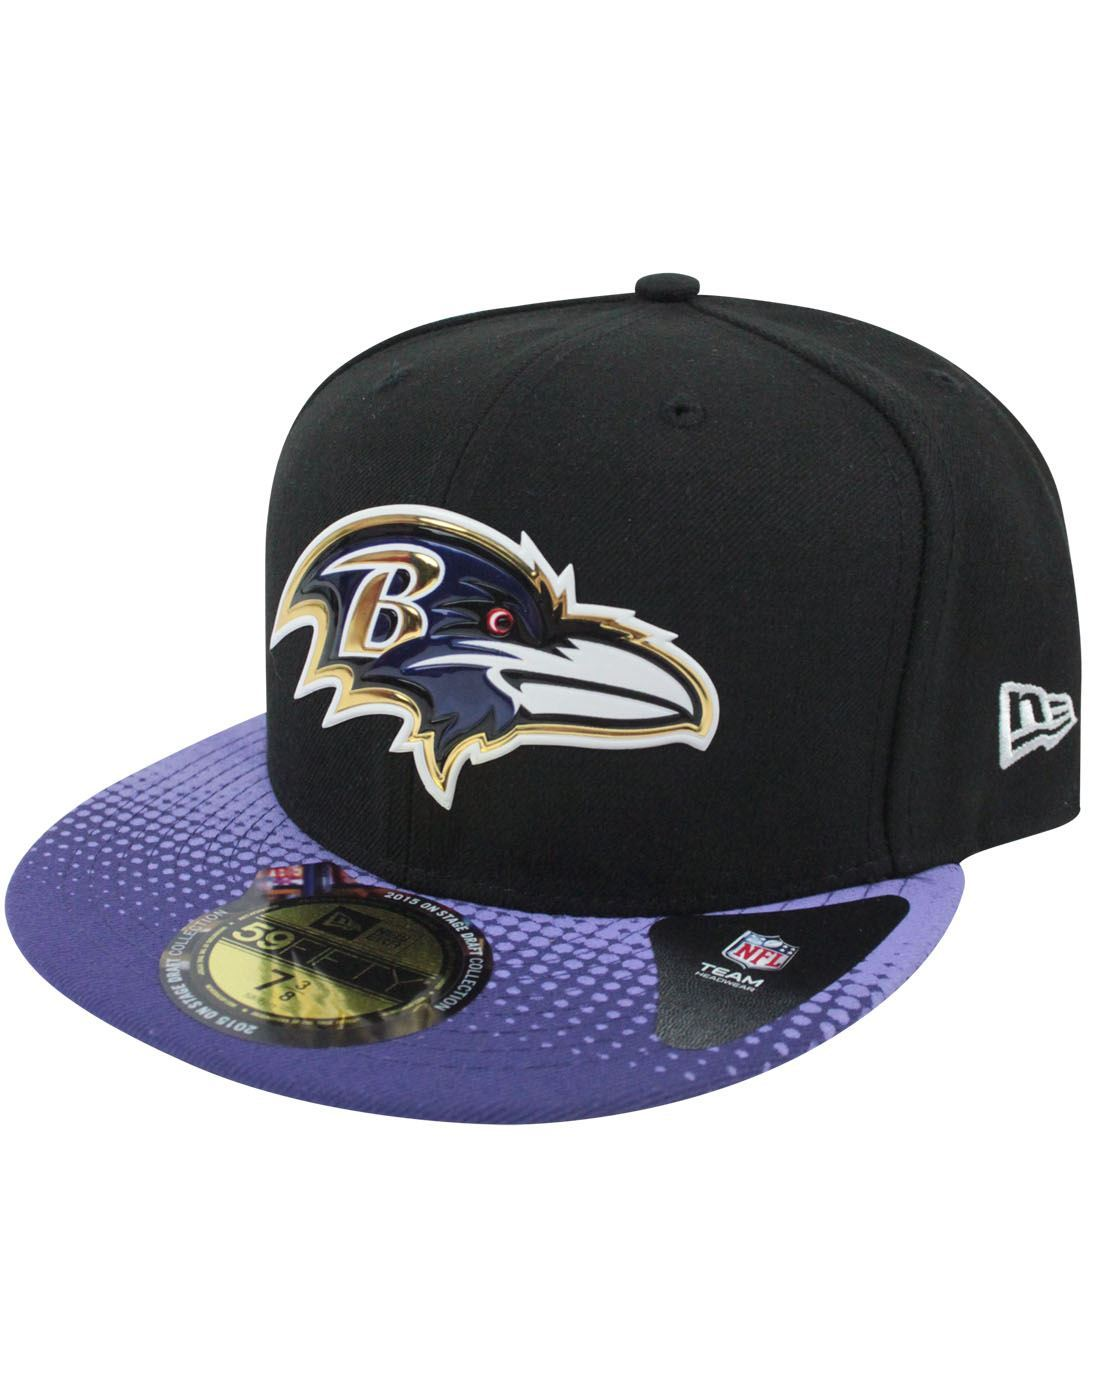 New Era 59Fifty NFL Baltimore Ravens Draft Cap – Vanilla Underground 7ce6b8065